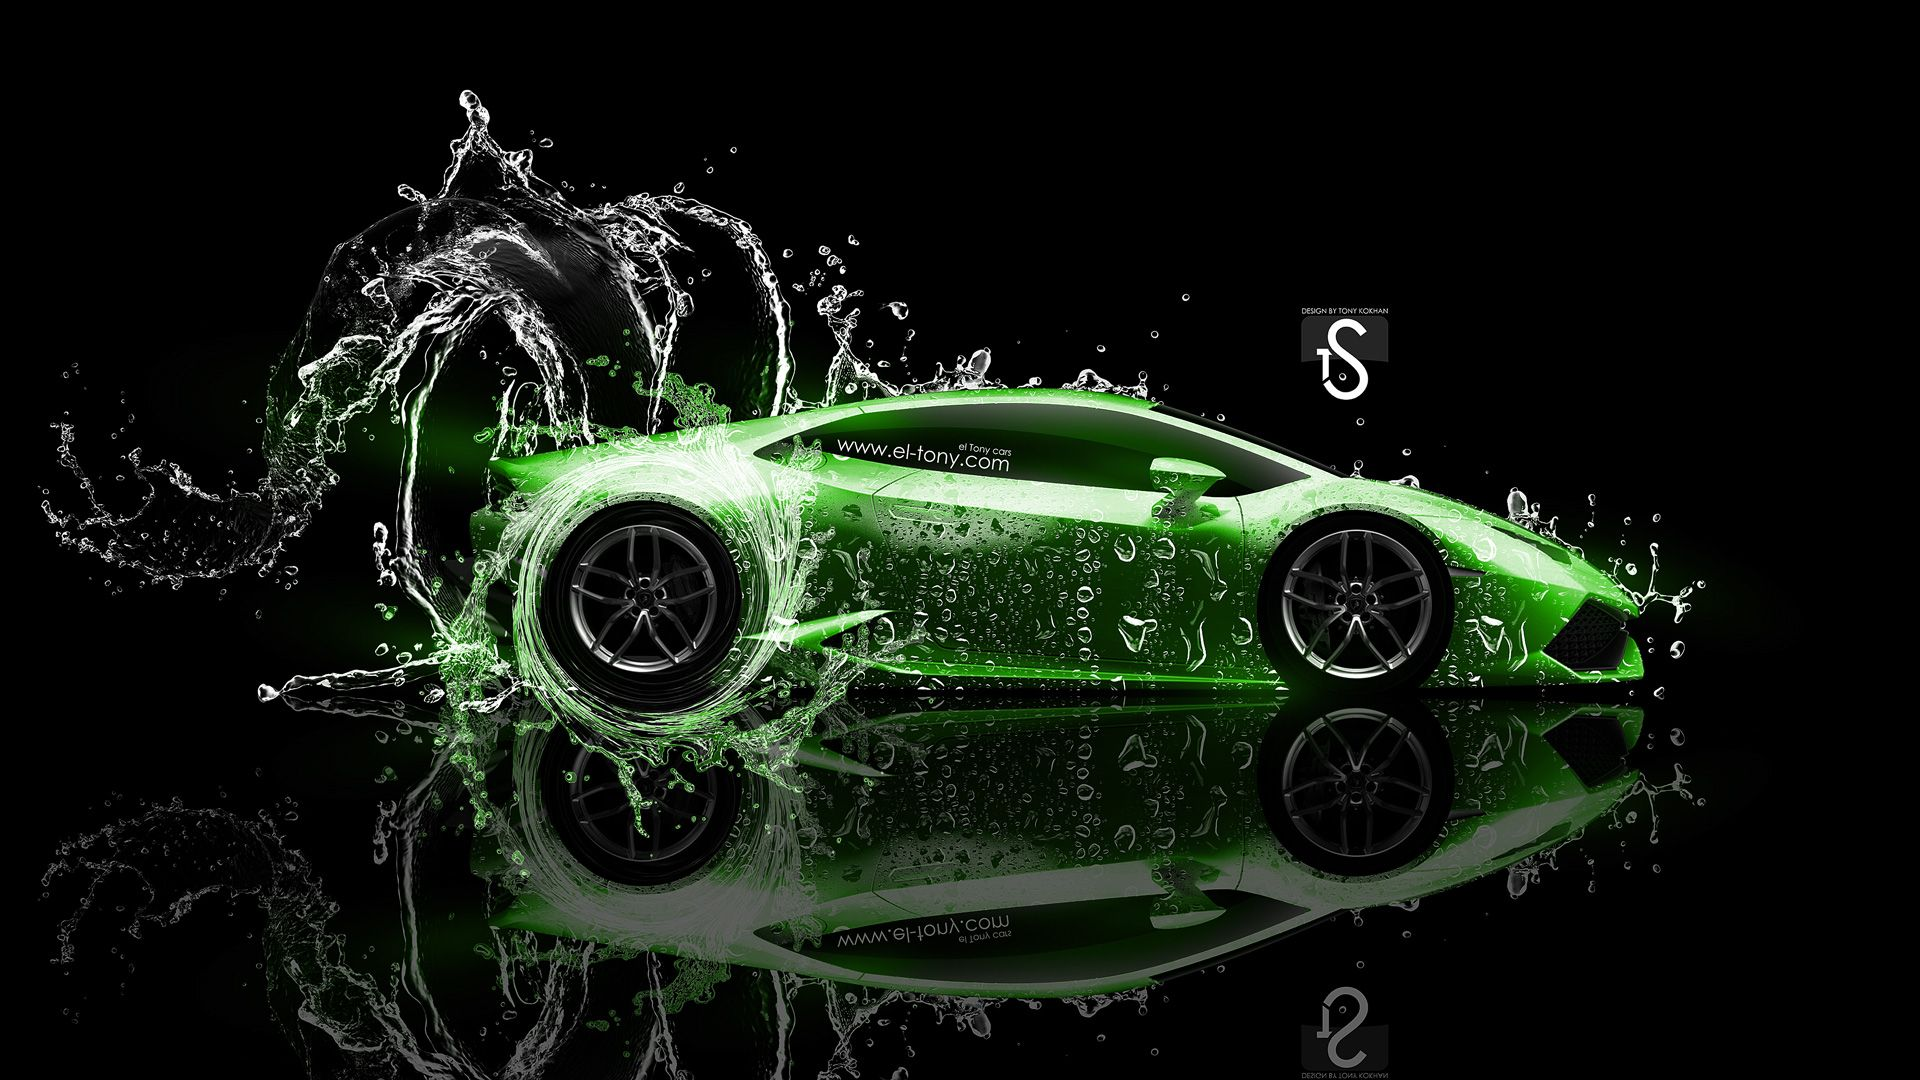 Lamborghini Huracan Tuning Front Water Car 2014   Lamborghini Huracan  Fantasy Plastic Bull Car Huracan Tuning Front Crystal City Car IPhone X  Back Logo ...